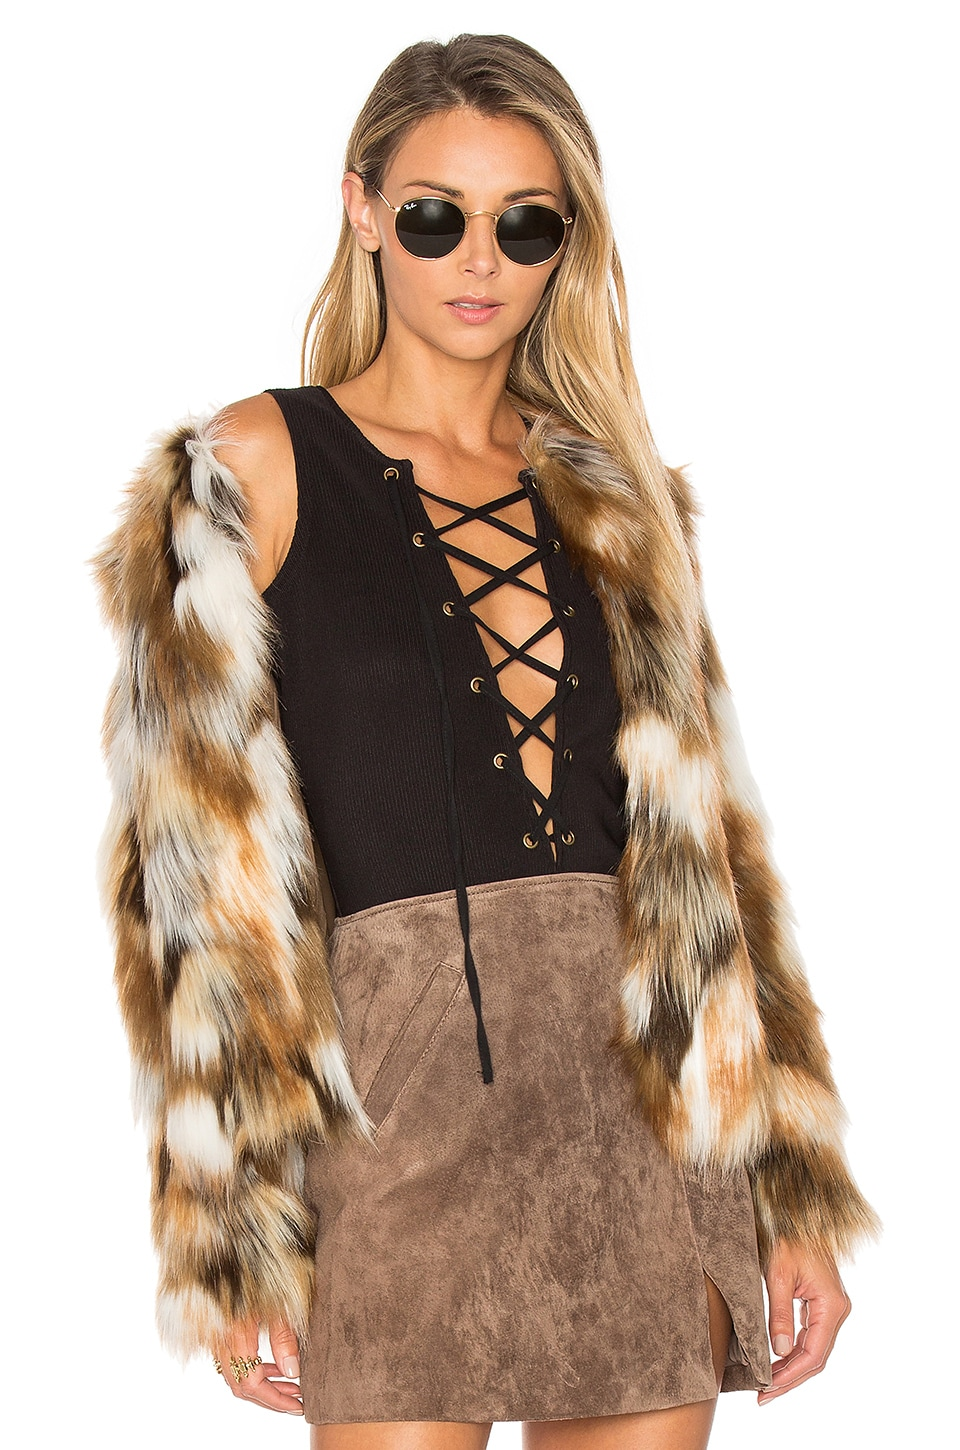 Tularosa x REVOLVE Averly Faux Fur Coat in Beige & Brown